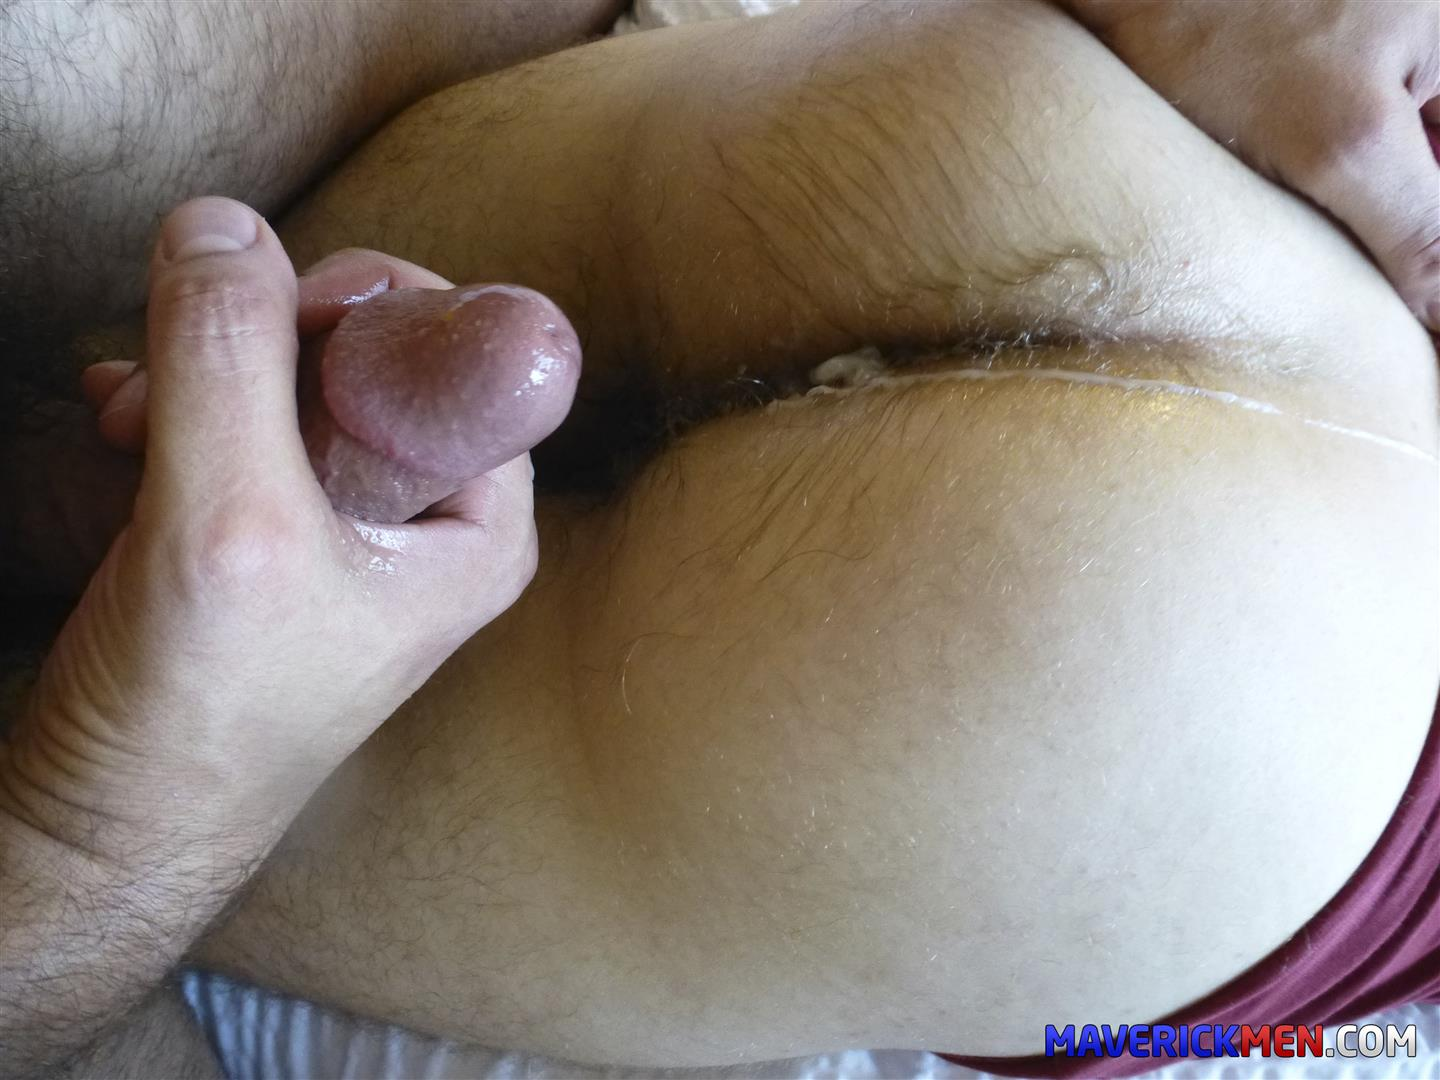 Maverick-Men-Little-Bobby-Hairy-Ass-Virgin-Gets-Barebacked-Amateur-Gay-Porn-08 Hairy Ass Young Virgin Gets Barebacked By Two Muscle Daddies